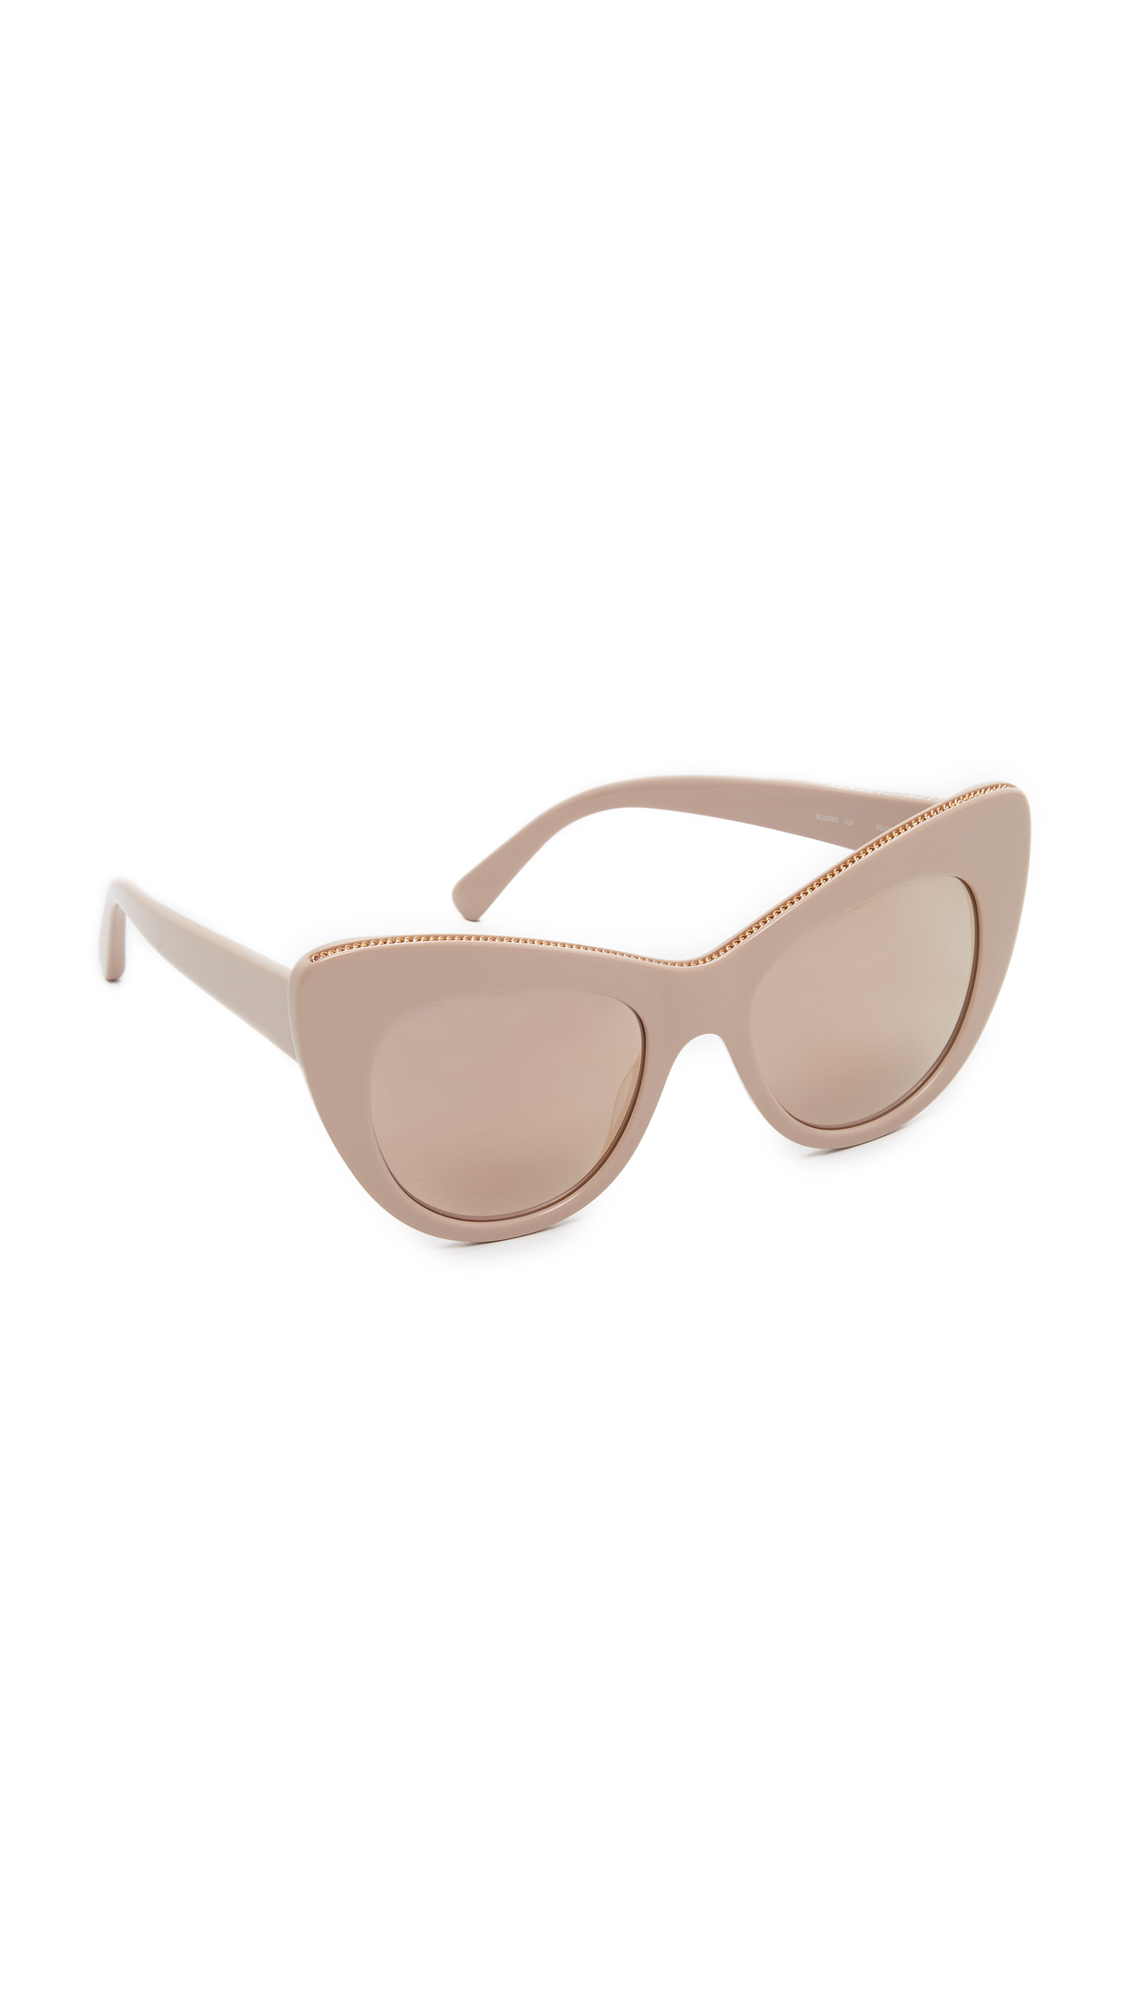 Delicate chain trim edges the top rim of these bold, cat eye Stella McCartney sunglasses. Mirrored lenses. Does not include case or cleaning cloth. Cateye frame. Polarized lenses. Made in Italy. Measurements Width: 6in / 15cm Height: 2.25